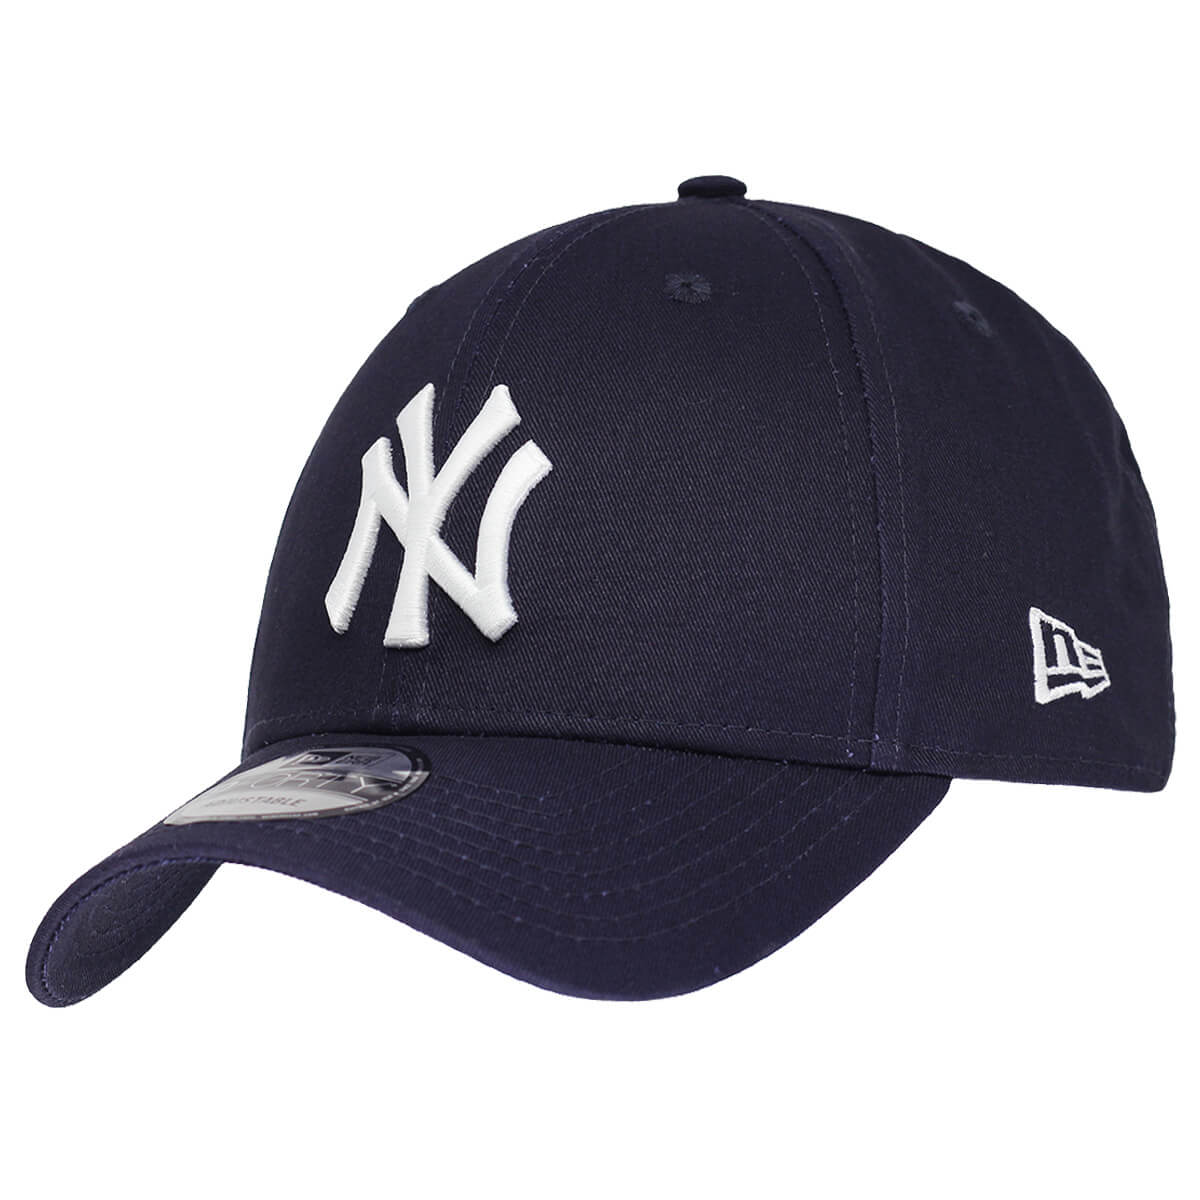 Boné New Era Aba Curva 940 SN MLB NY Yankees Colors Azul Escuro